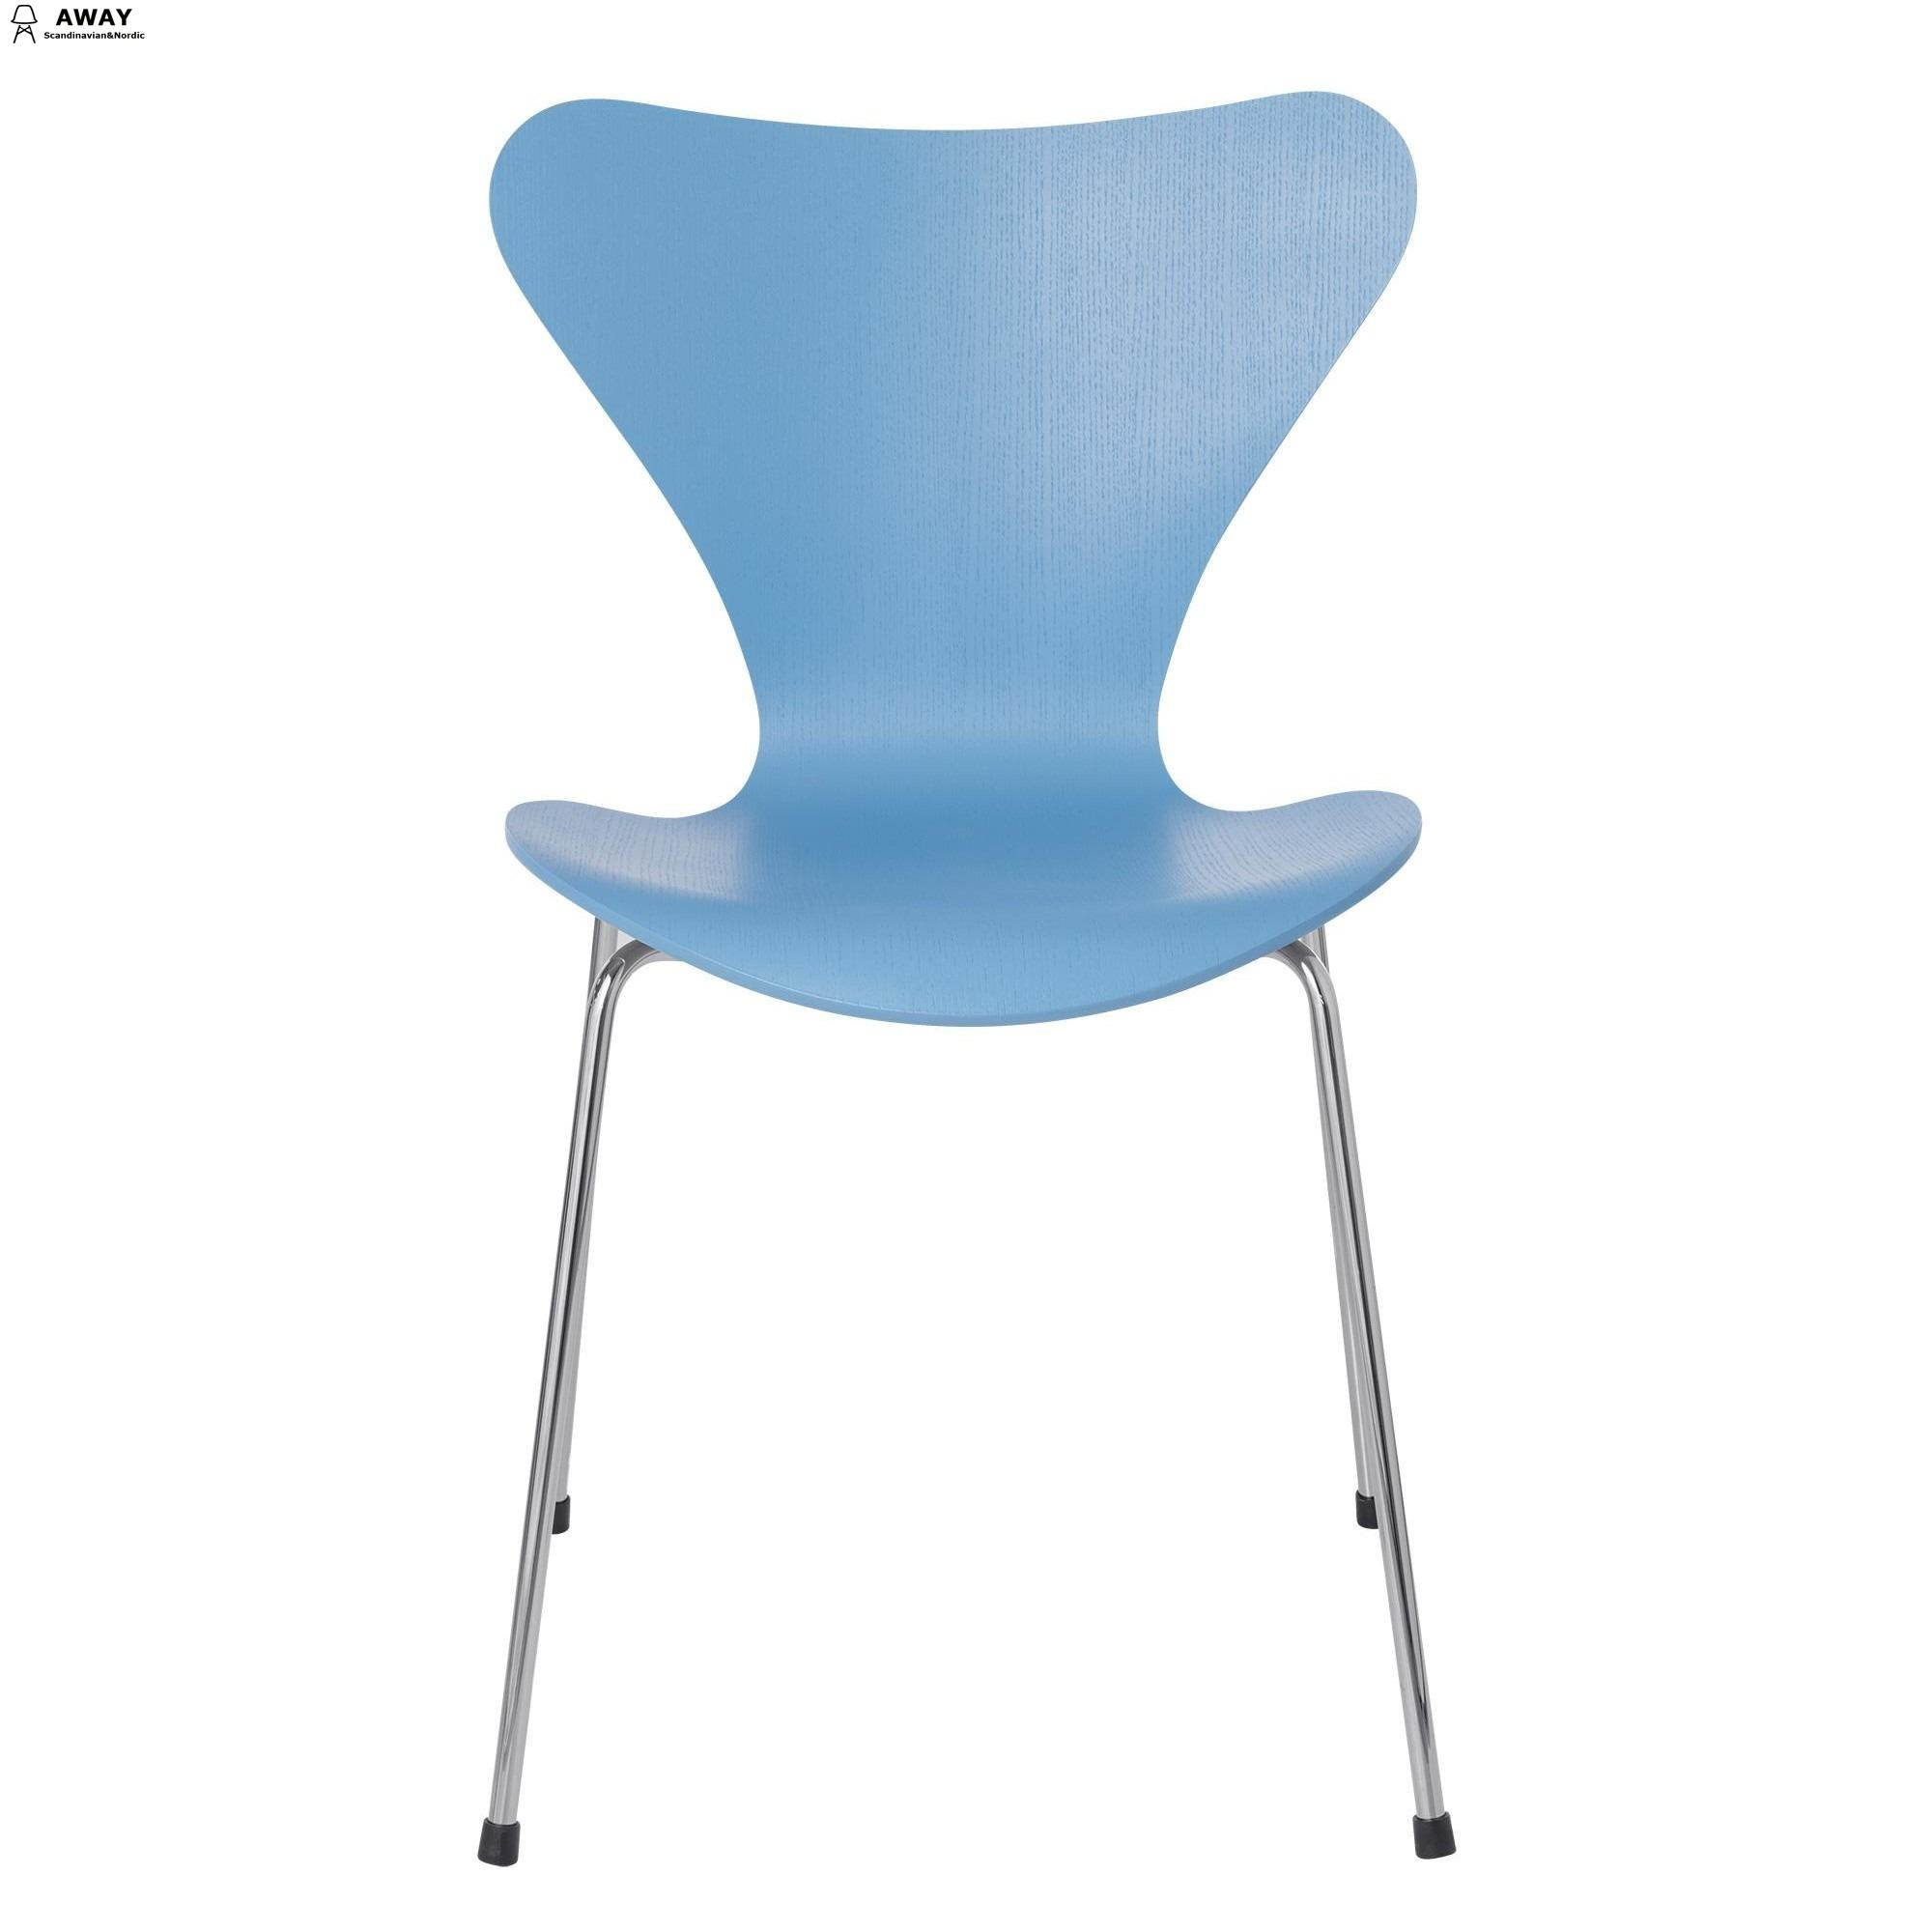 classic Serie 7 chair light blue